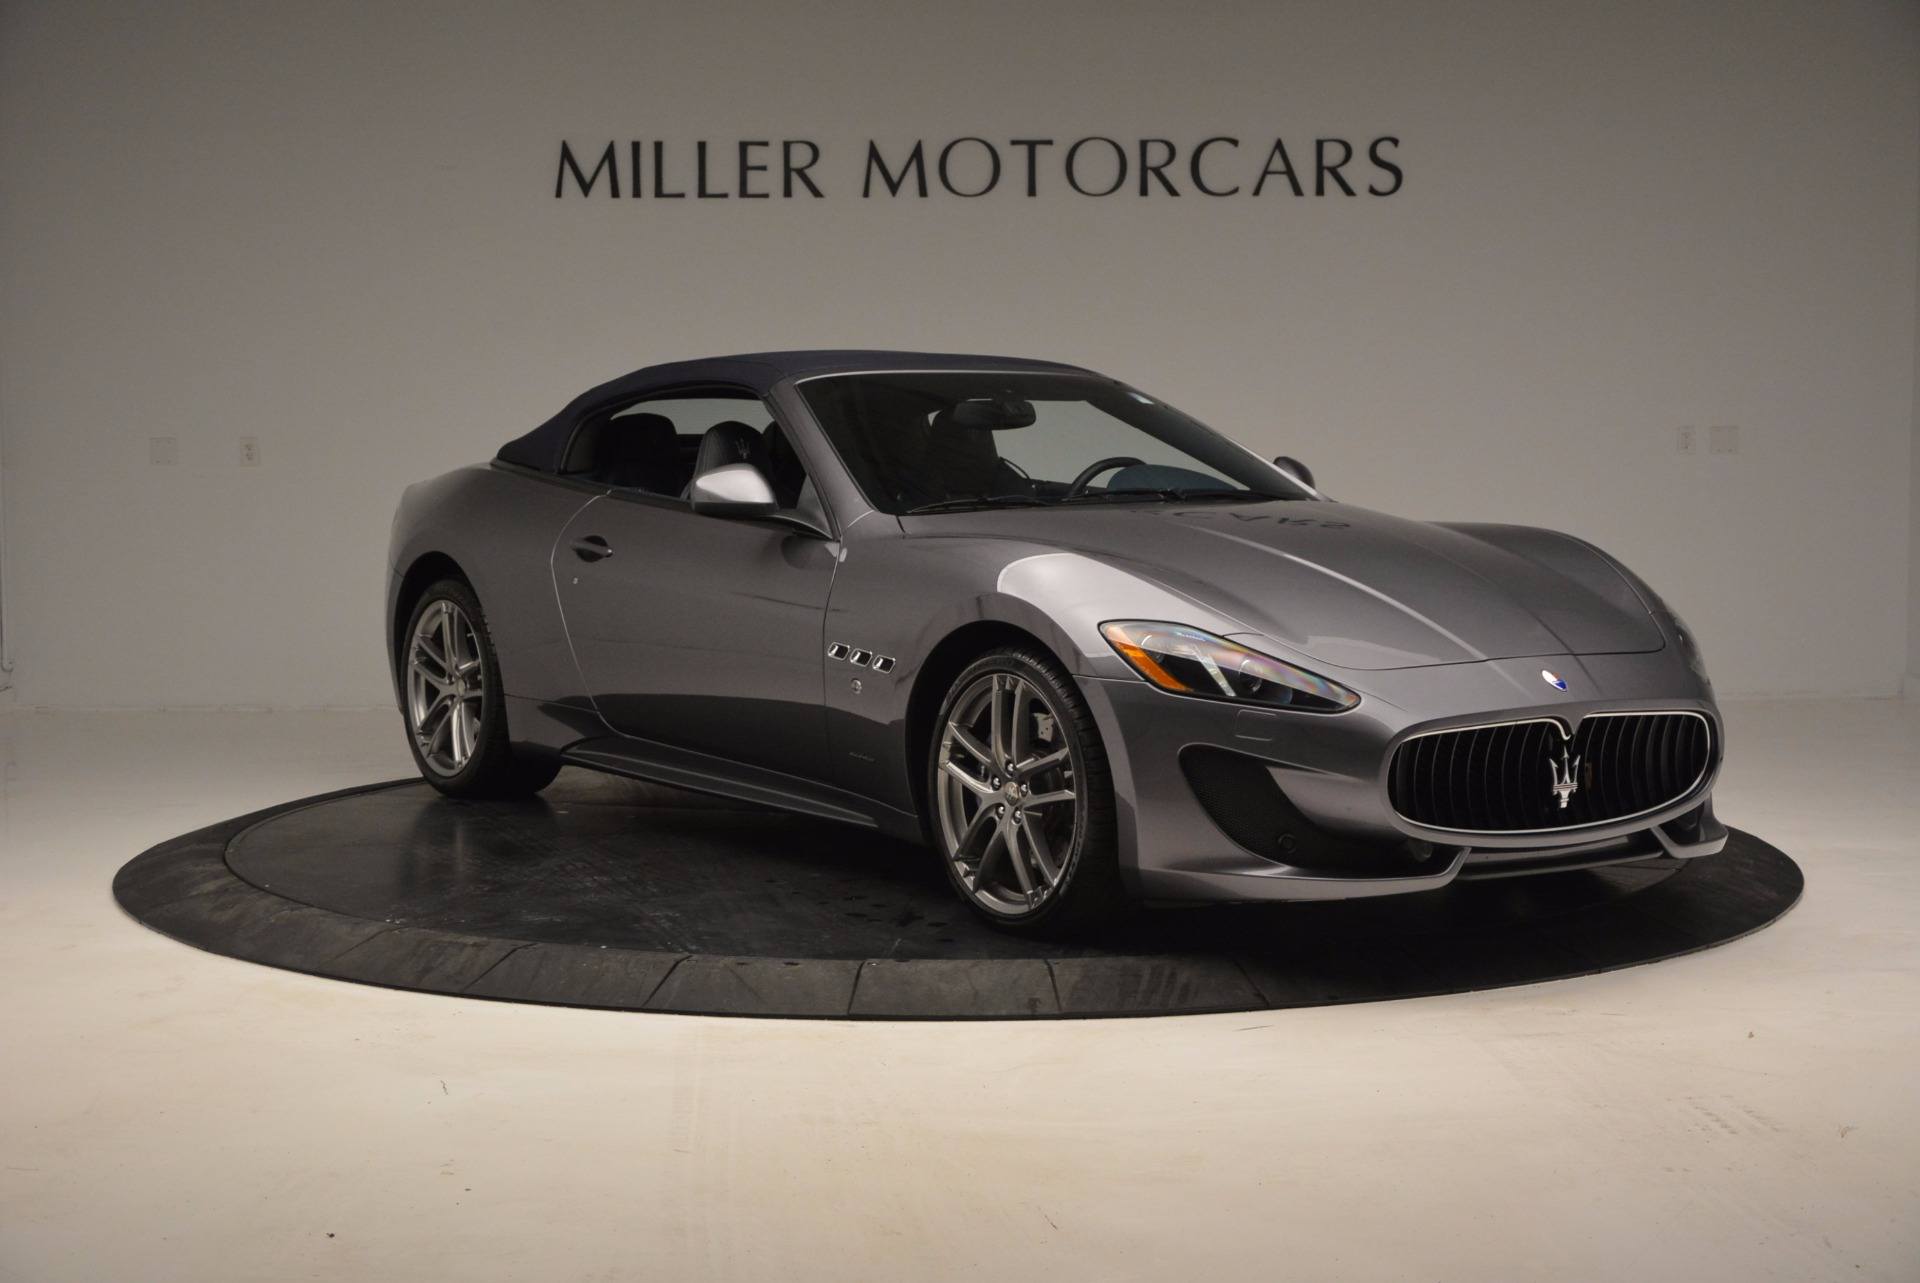 New 2017 Maserati GranTurismo Sport For Sale In Westport, CT 598_p20